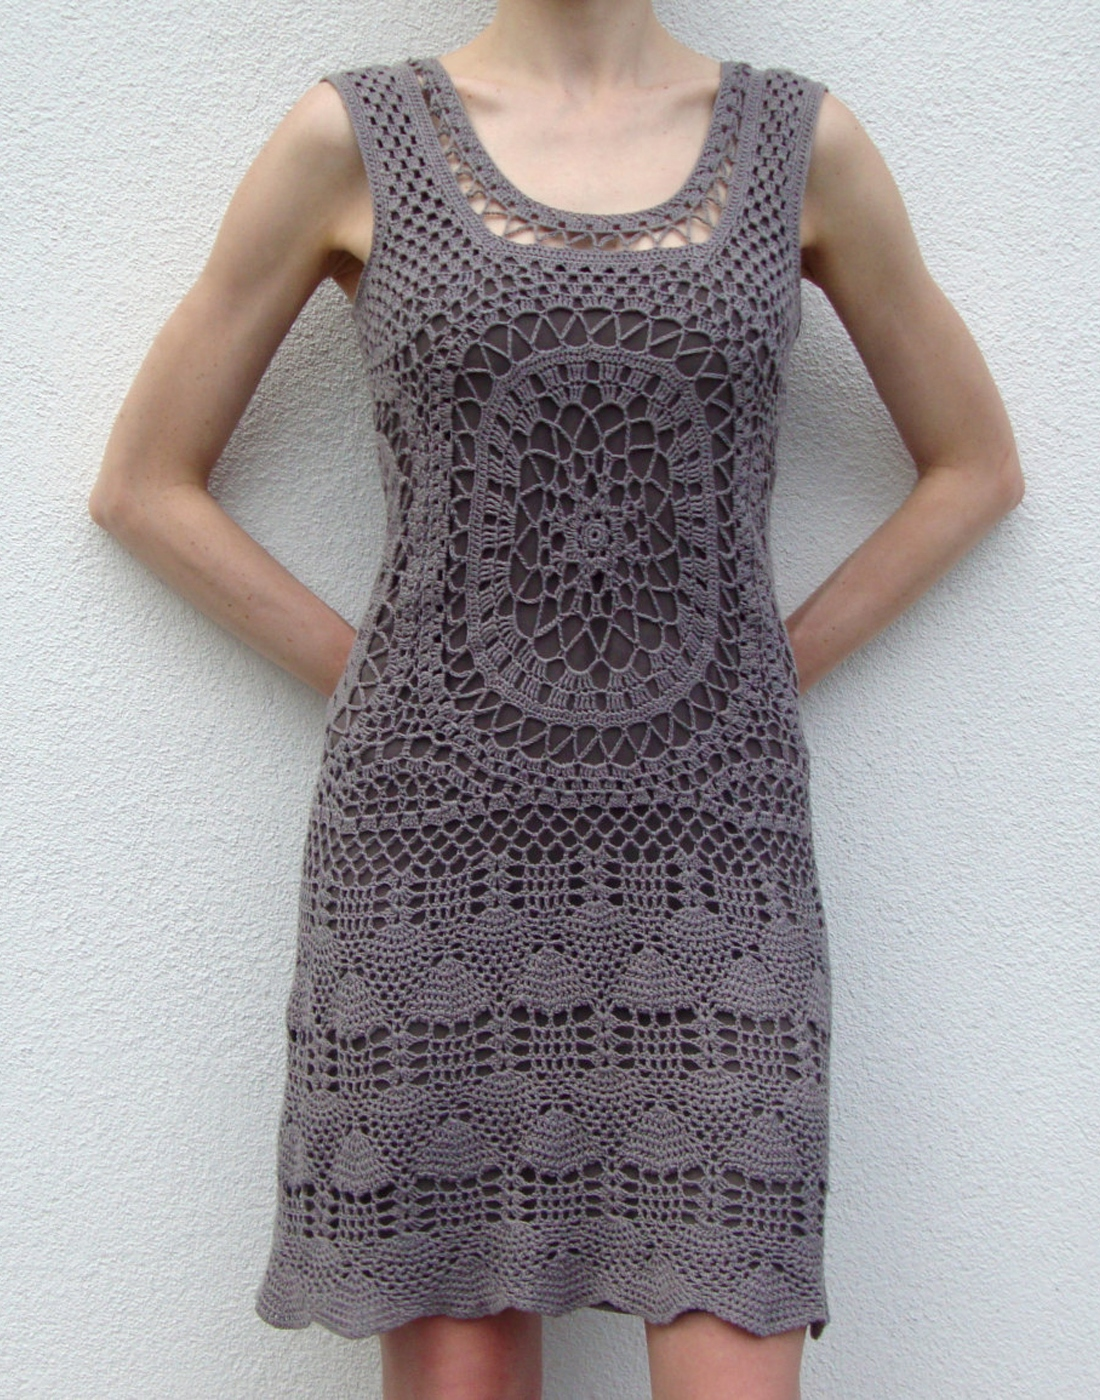 Crochet Clothing : Designer crochet dress (PATTERN) CreativeHandmadeCONCEPTs